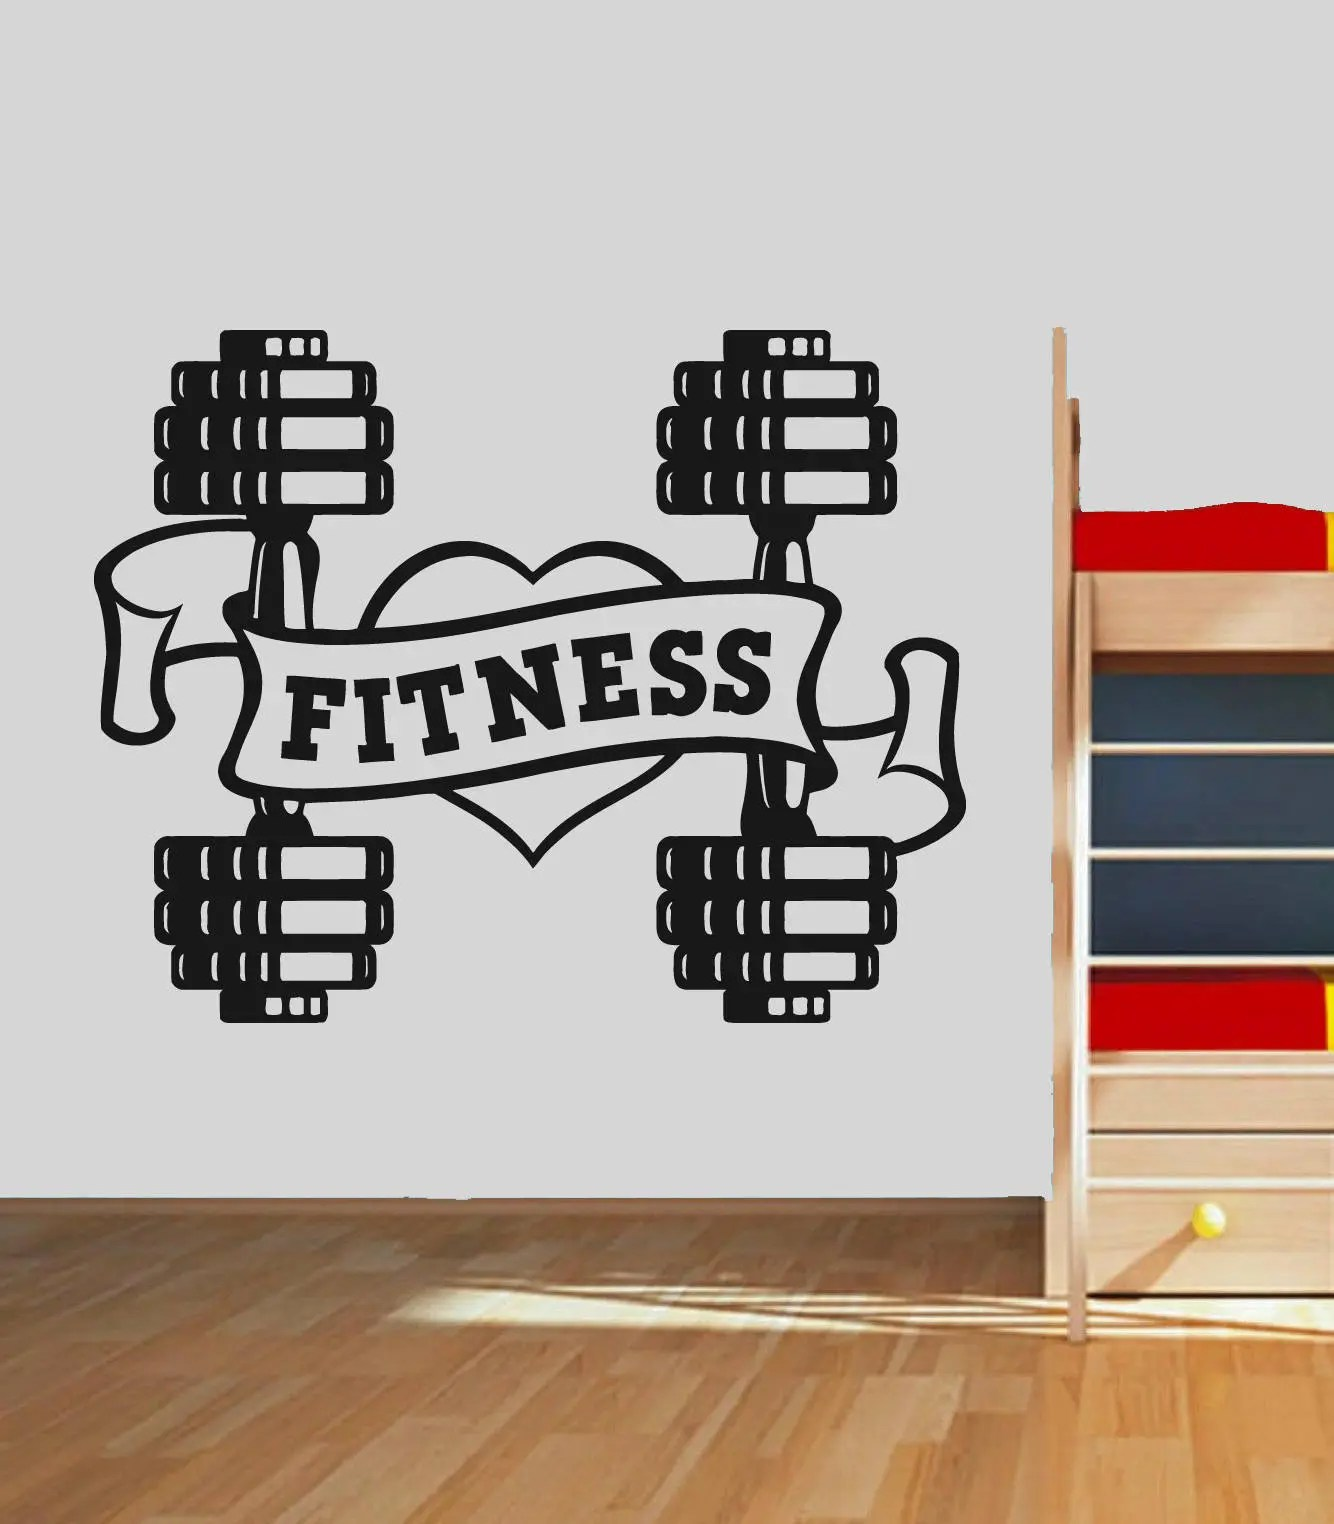 Garage Gym Wall Decor Love Fitness Wall Decal Dumbbell Fitness Wall Sticker Garage Gym Wall Decor Crossfit Motivation Wall Decal Gym Logo Wall Mural Se091